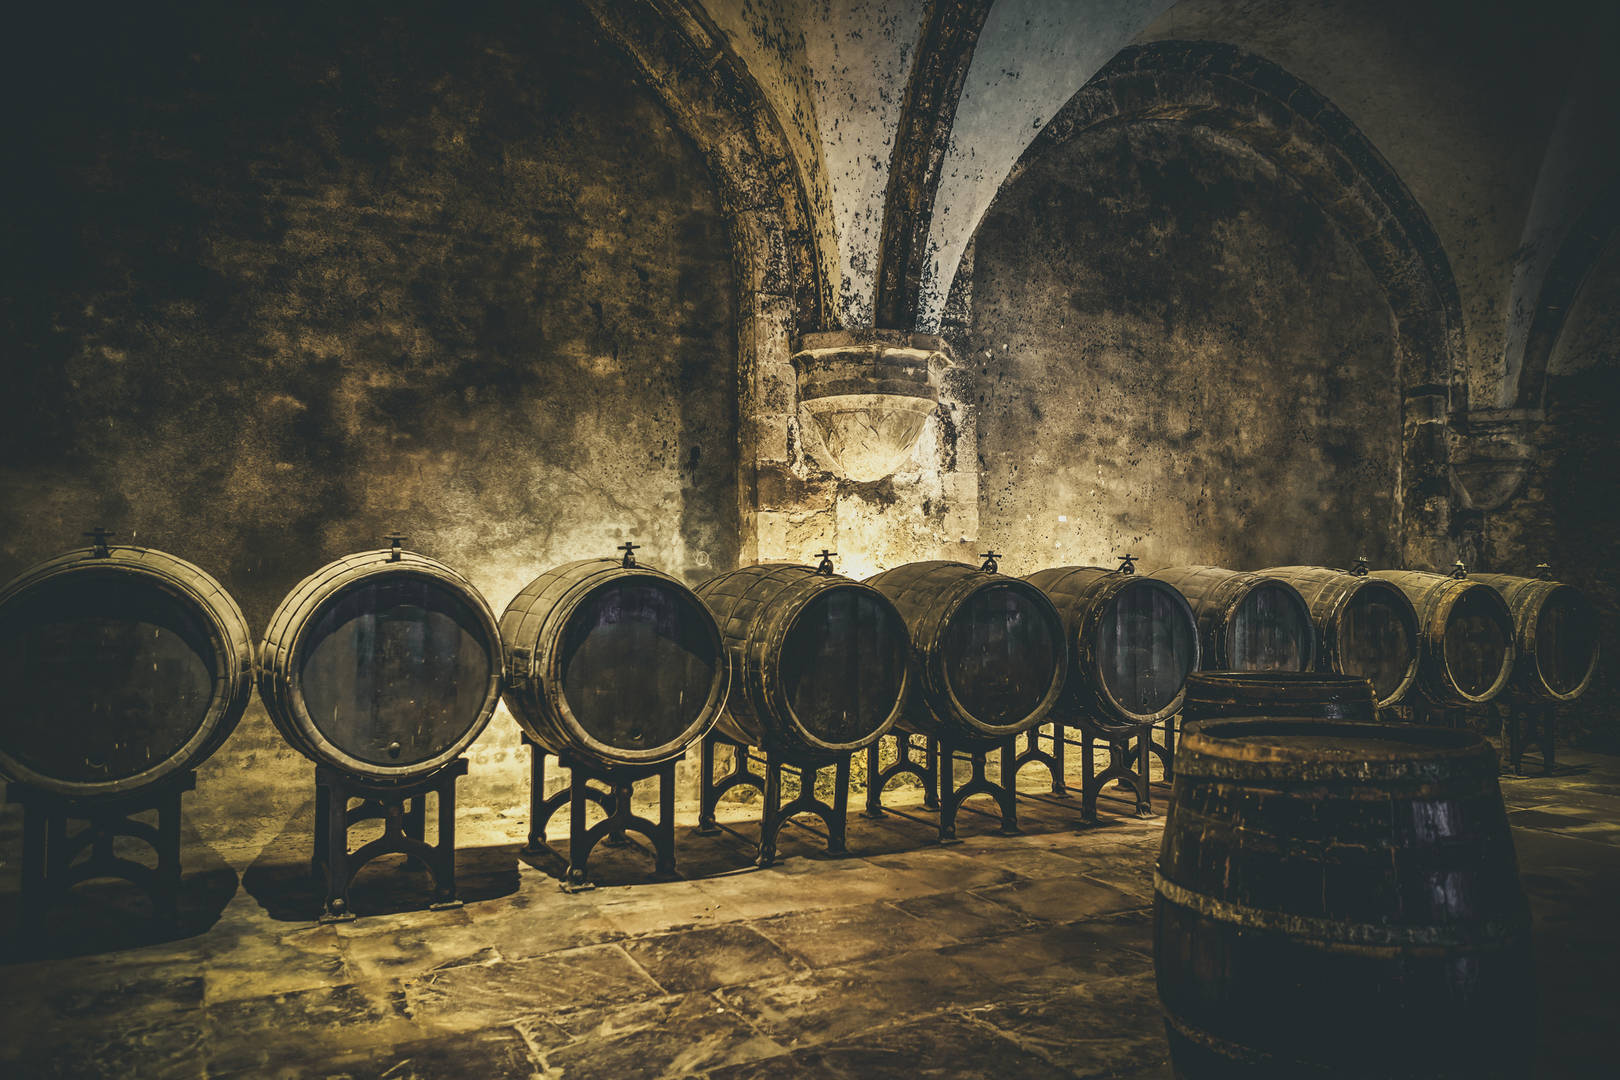 A historic wine cellar